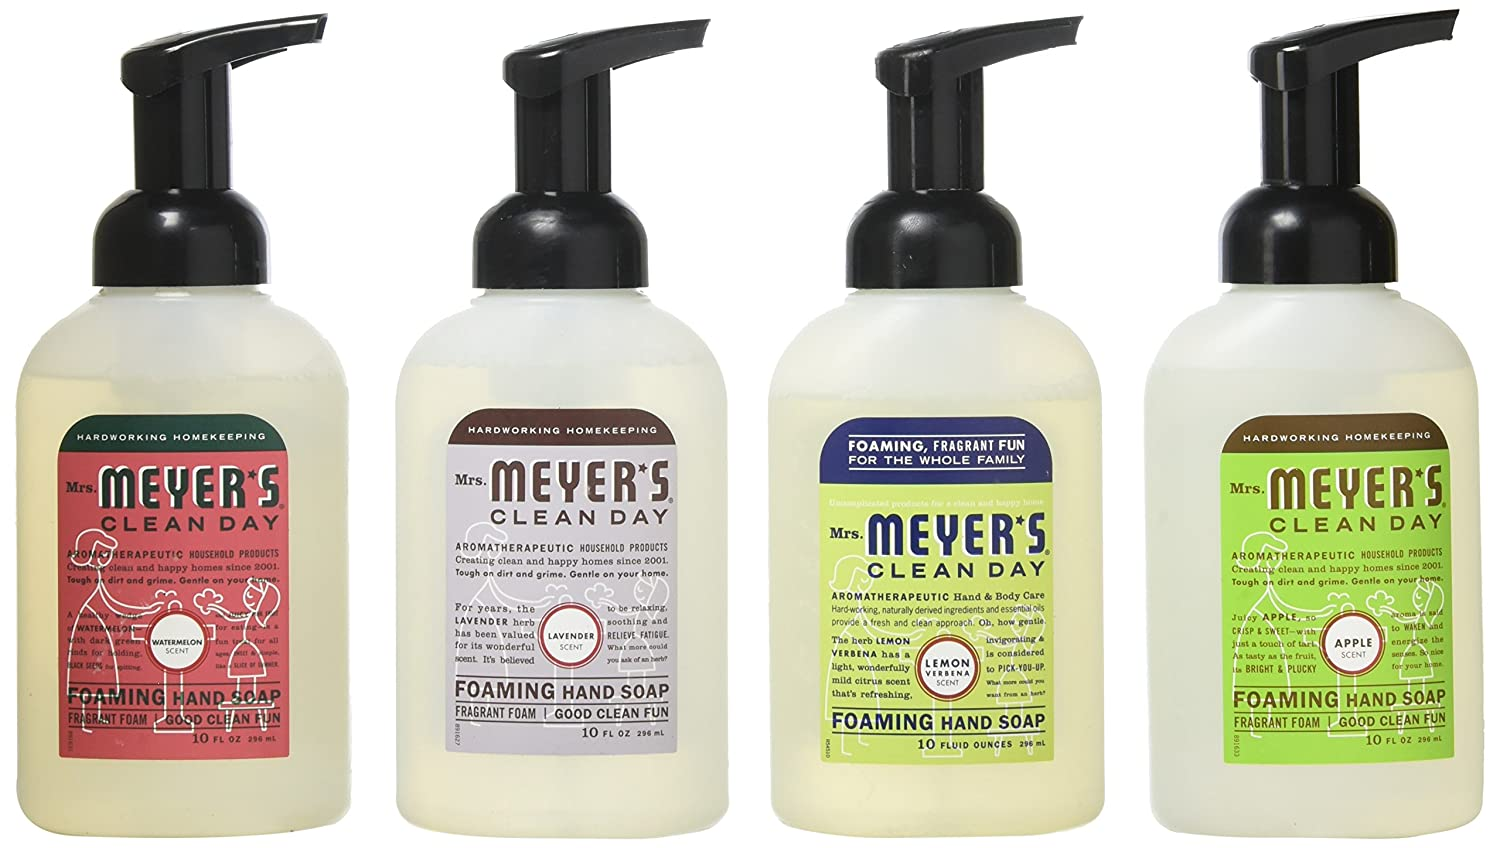 Mrs. Meyers Clean Day 4-Piece Foaming Hand Soap Variety Pack (10 oz Each) by Mrs. Meyers B018RDZVD2